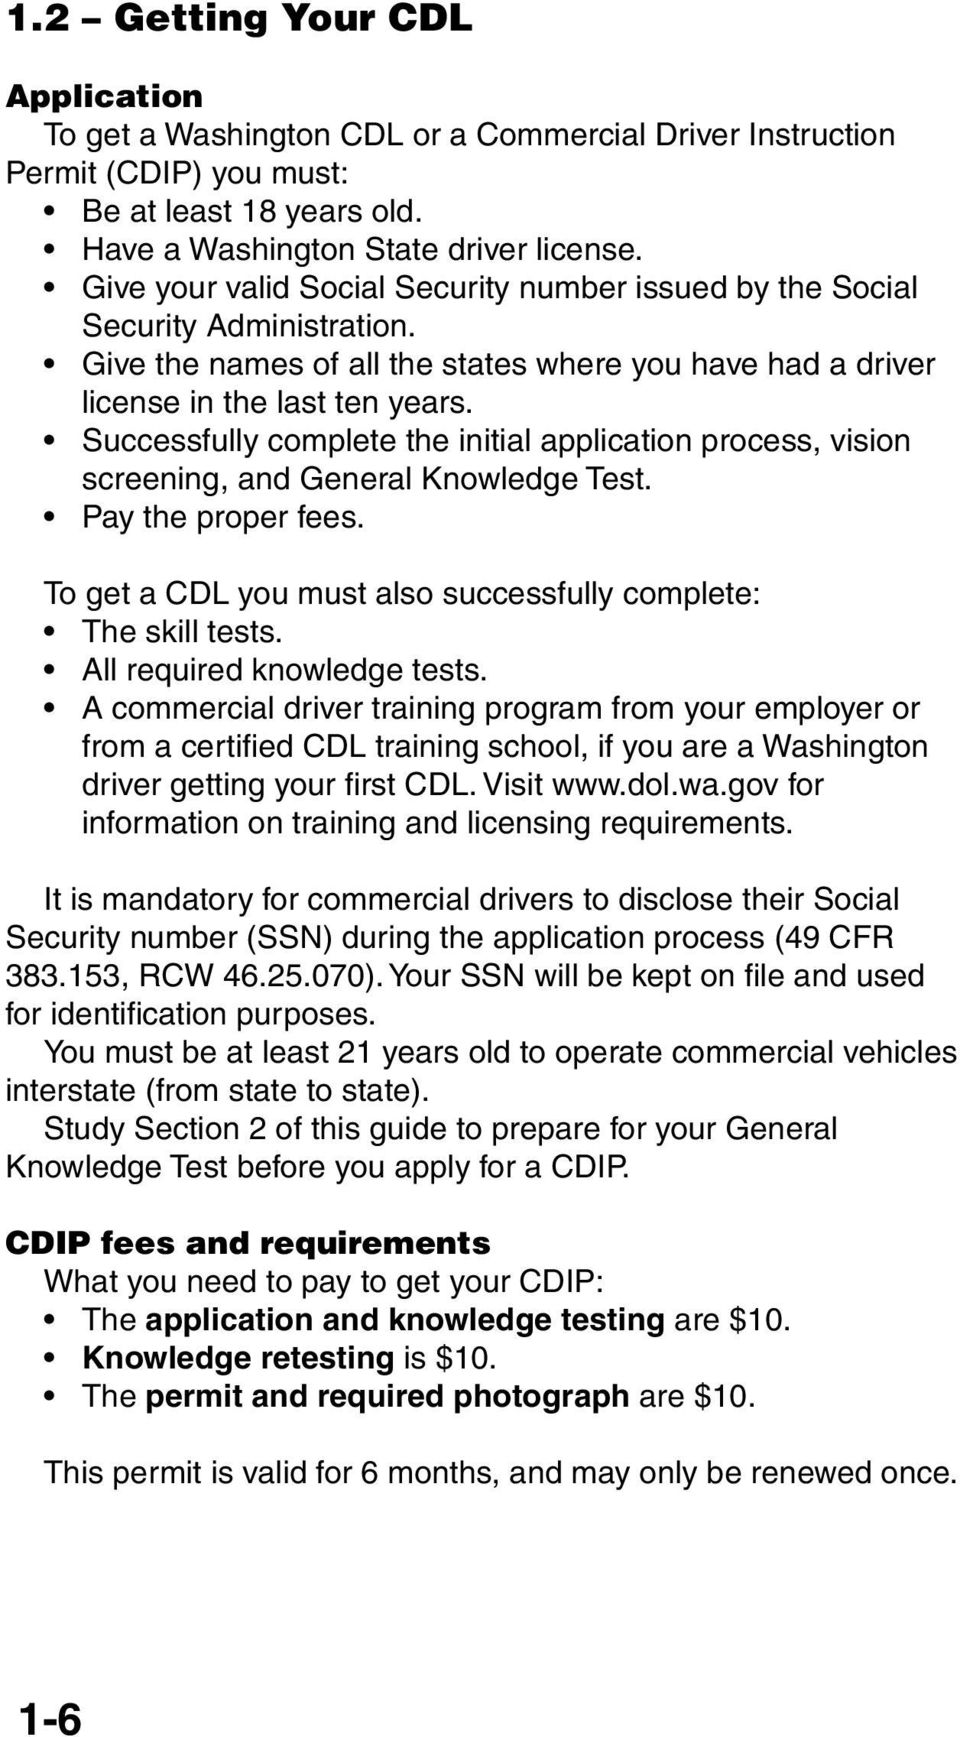 Commercial Driver Guide - PDF